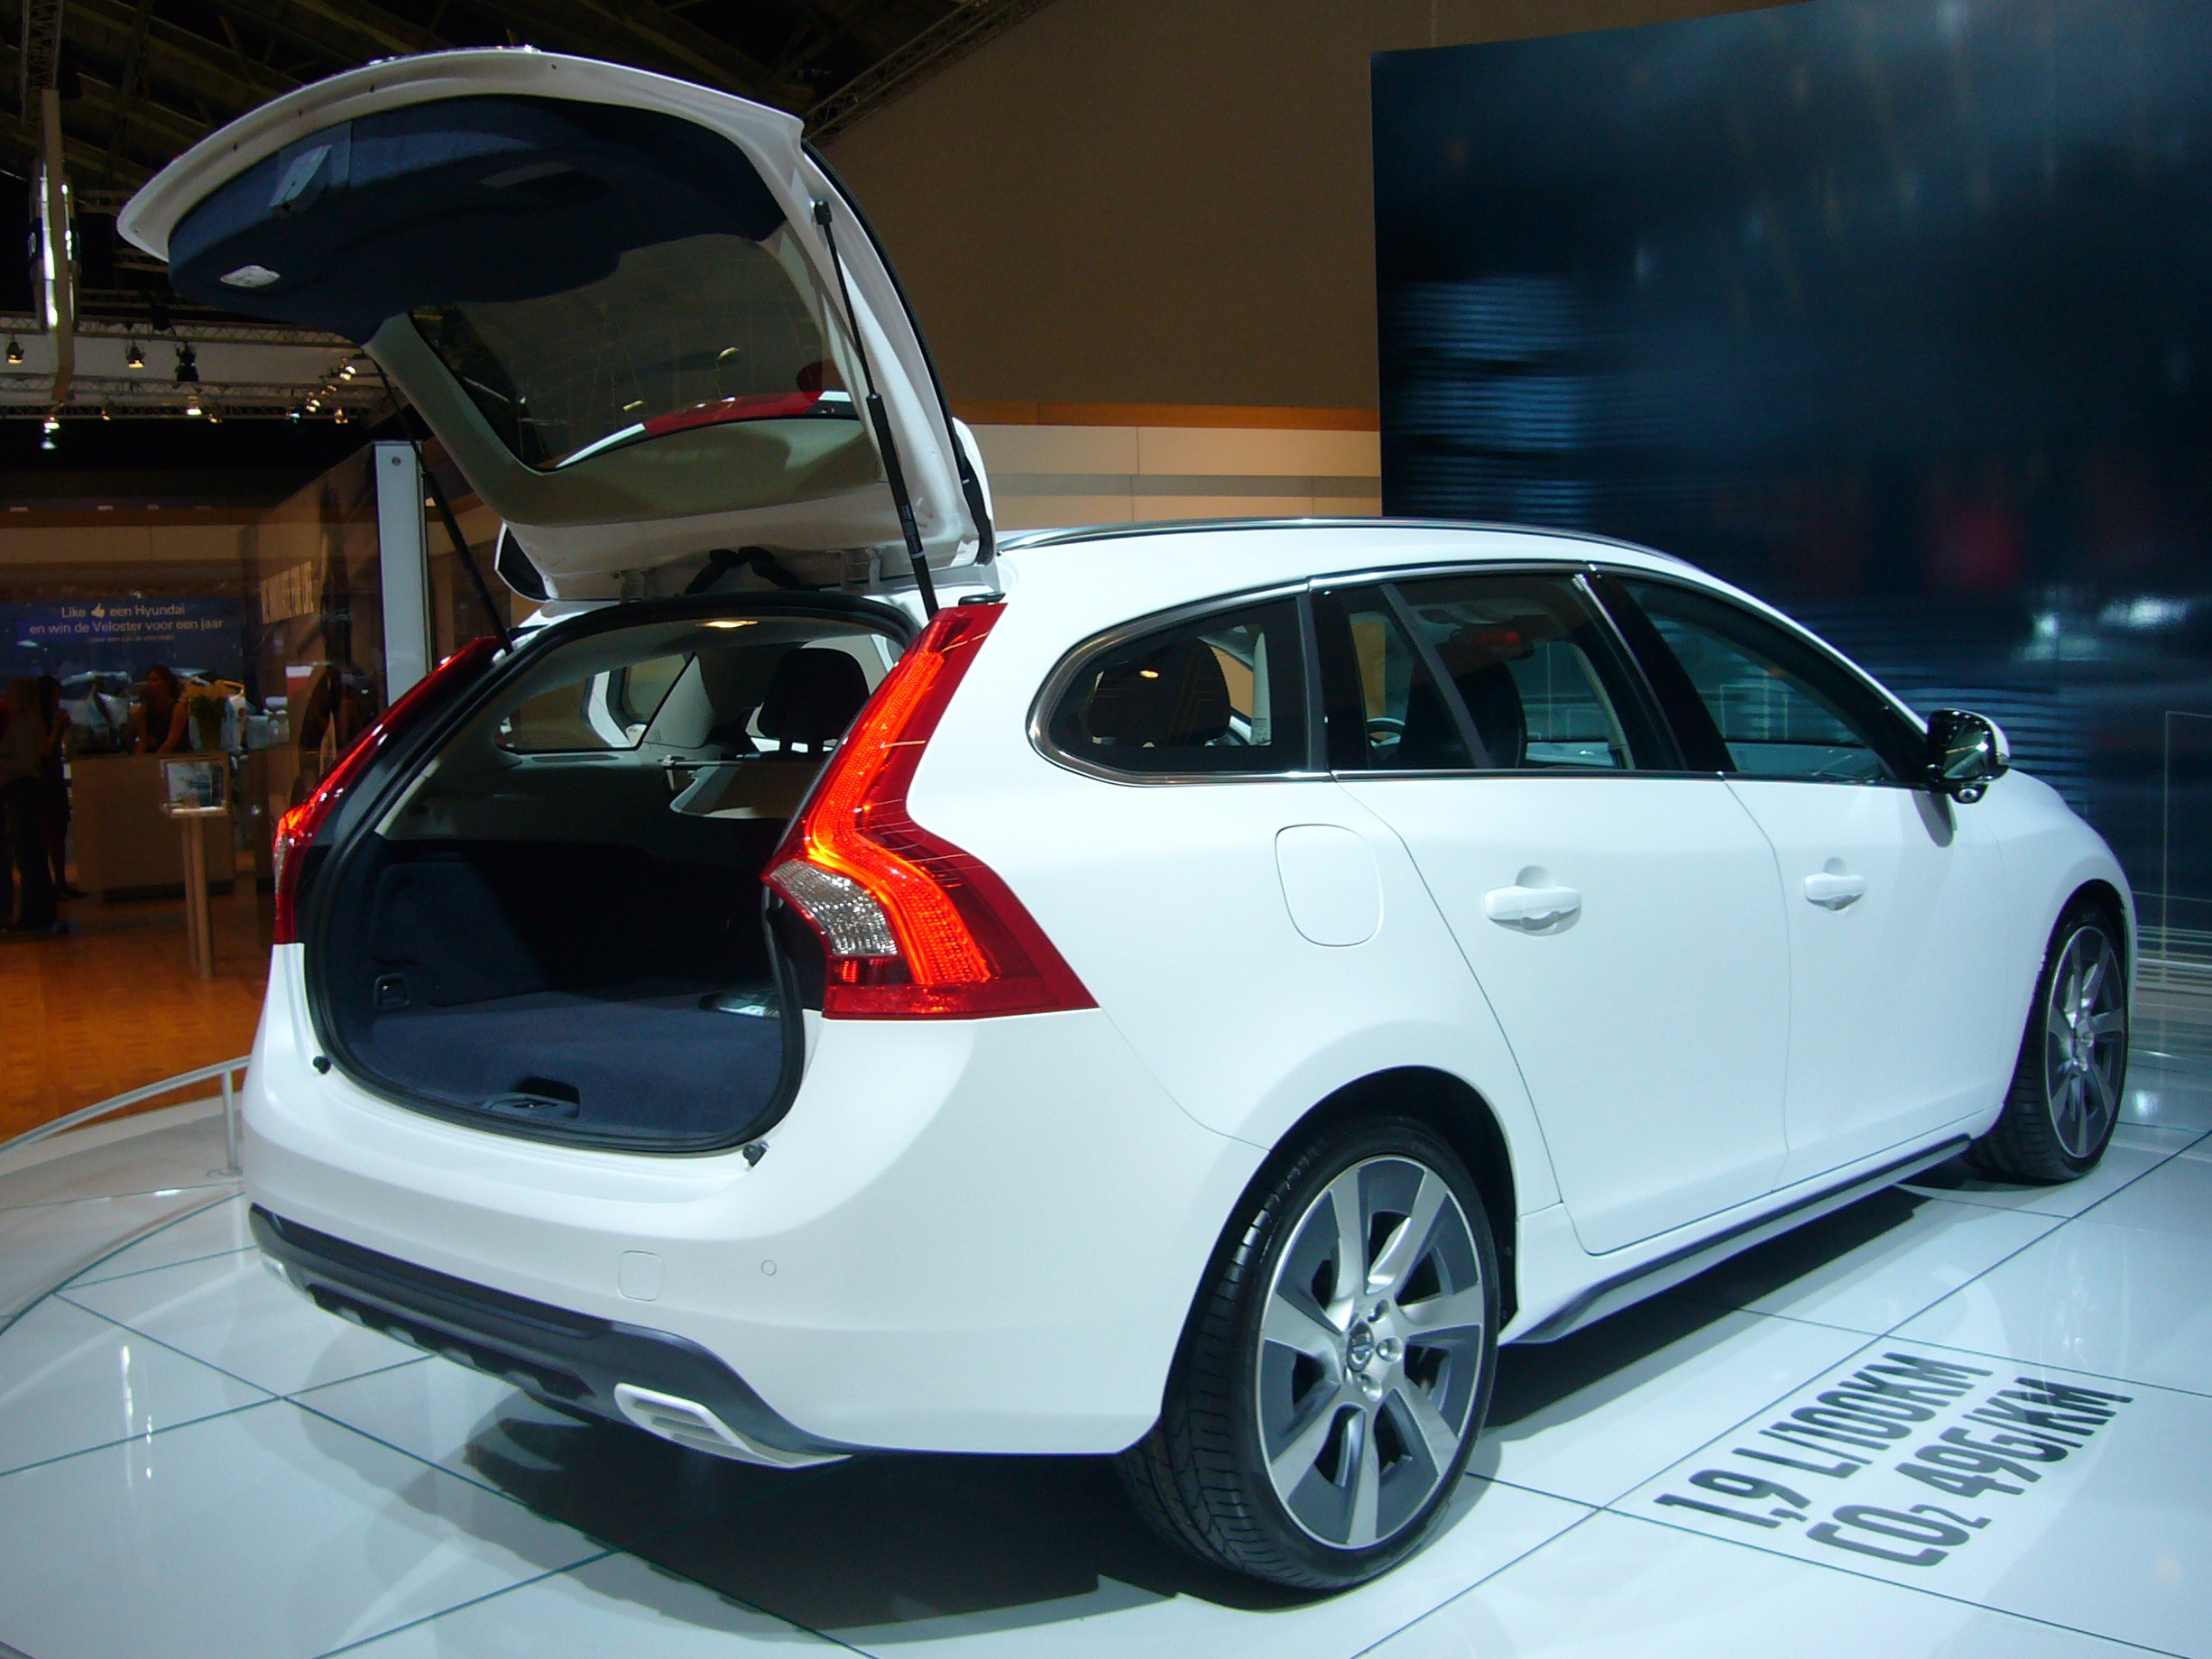 file volvo v60 plug in hybrid rear quarter jpg wikimedia commons. Black Bedroom Furniture Sets. Home Design Ideas